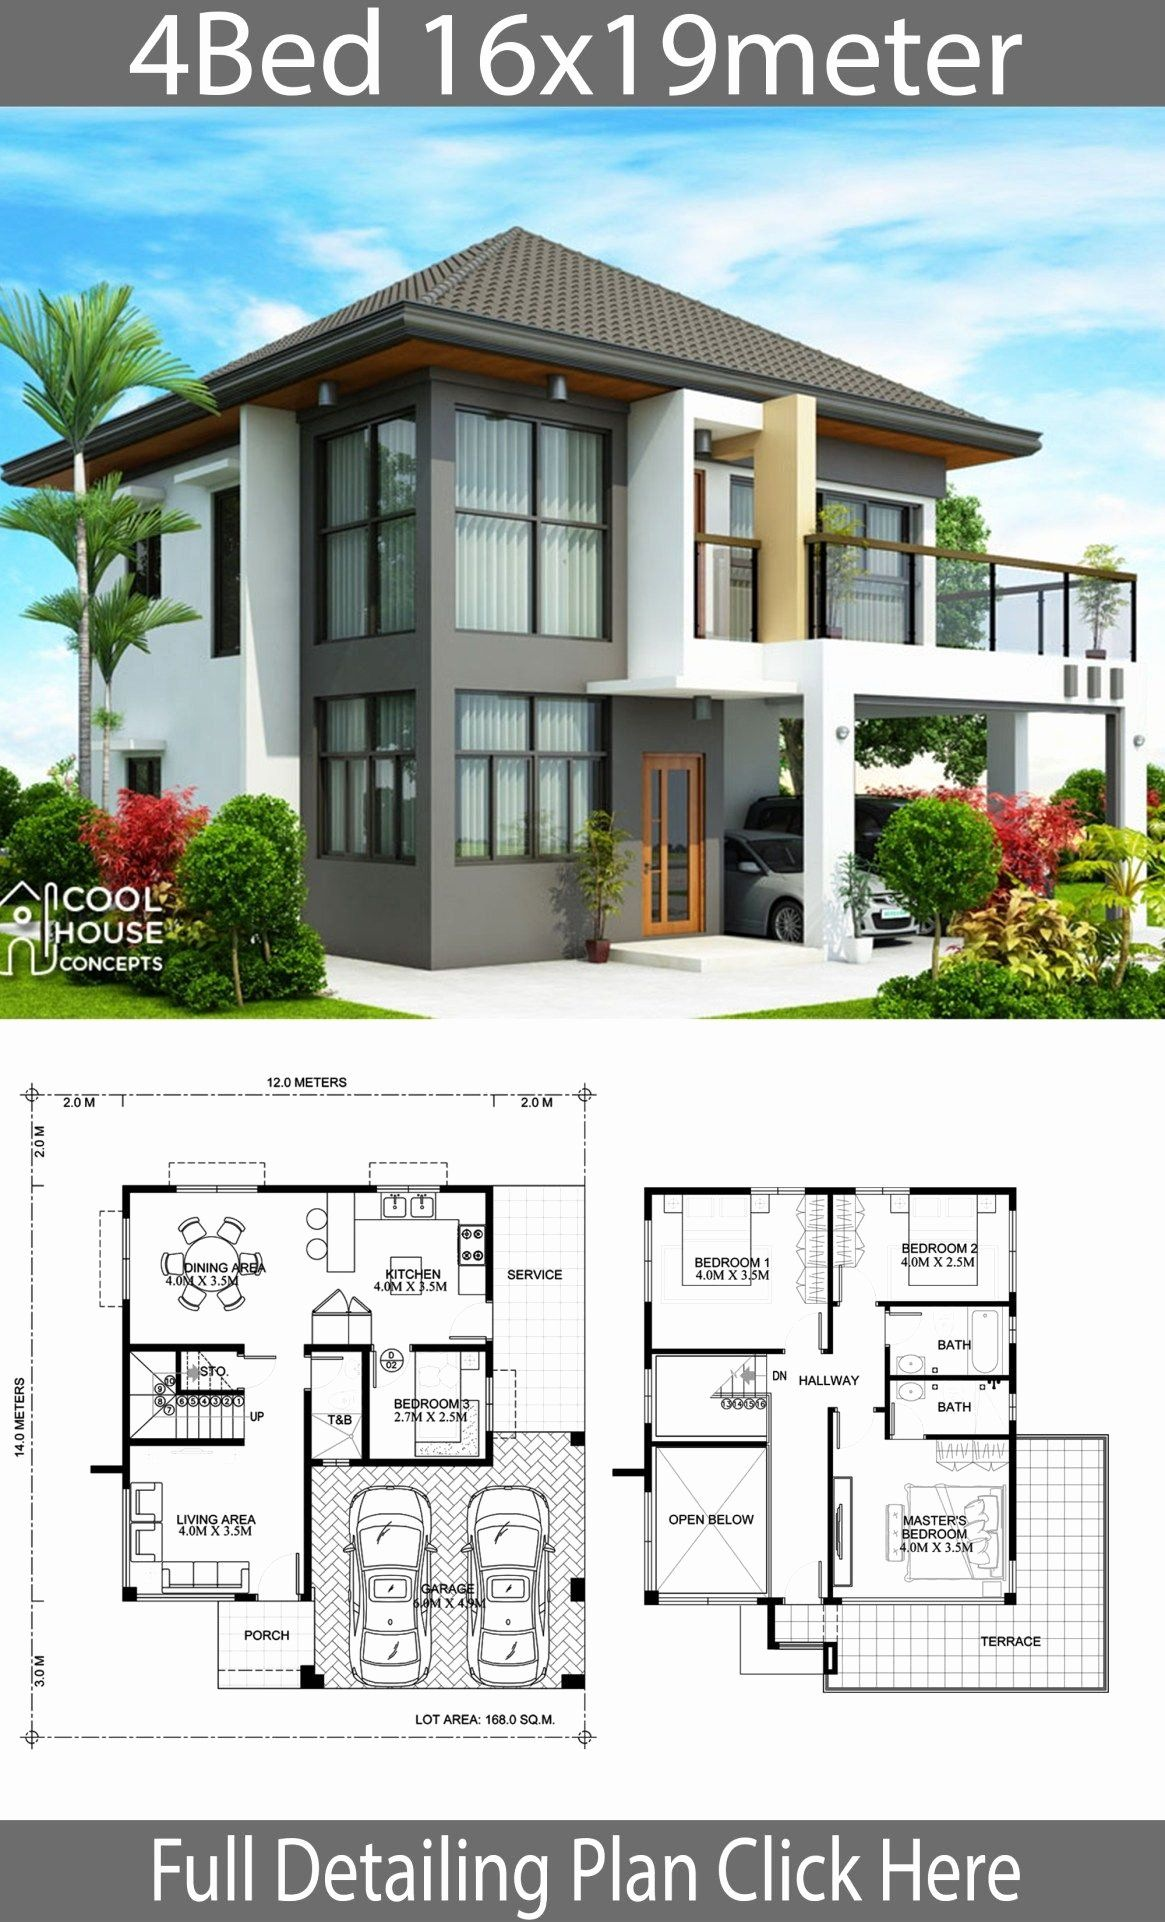 4 Bedroom Bungalow Architectural Design Fresh Home Design Plan 16x19m With 4 Bedrooms In In 2020 House Construction Plan Modern House Design Architectural House Plans